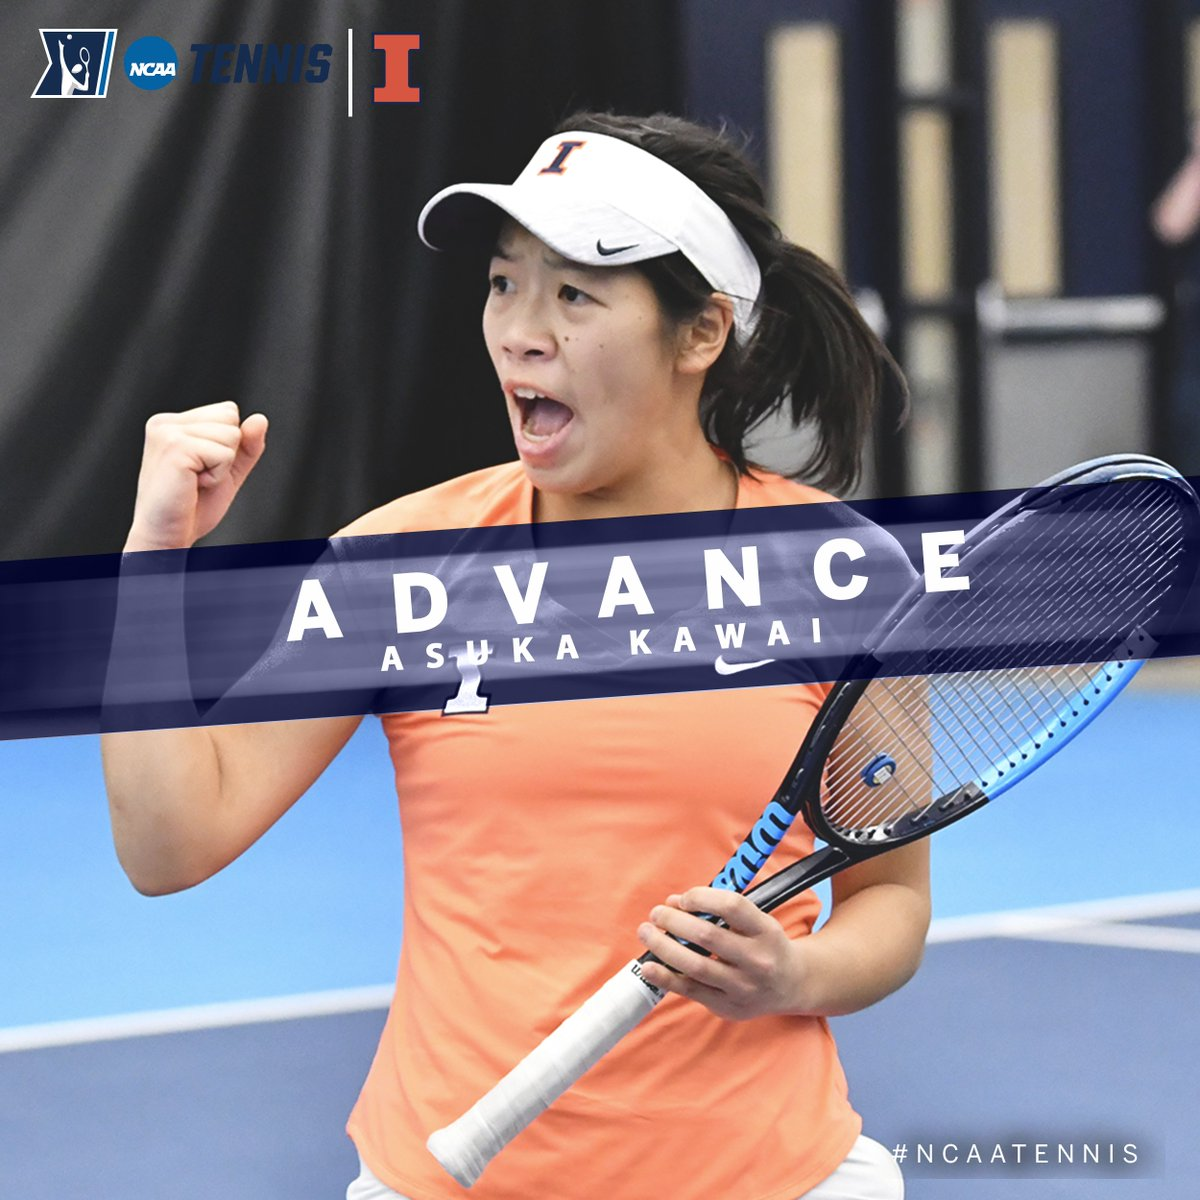 Asuka Kawai of @IlliniWTennis wins an all #B1GWTennis match-up in the @NCAATennis Singles Second Round, as she outlasts, Brienne Minor of Michigan, 6-3, 7-6 to advance to the Round of 16 in Orlando.